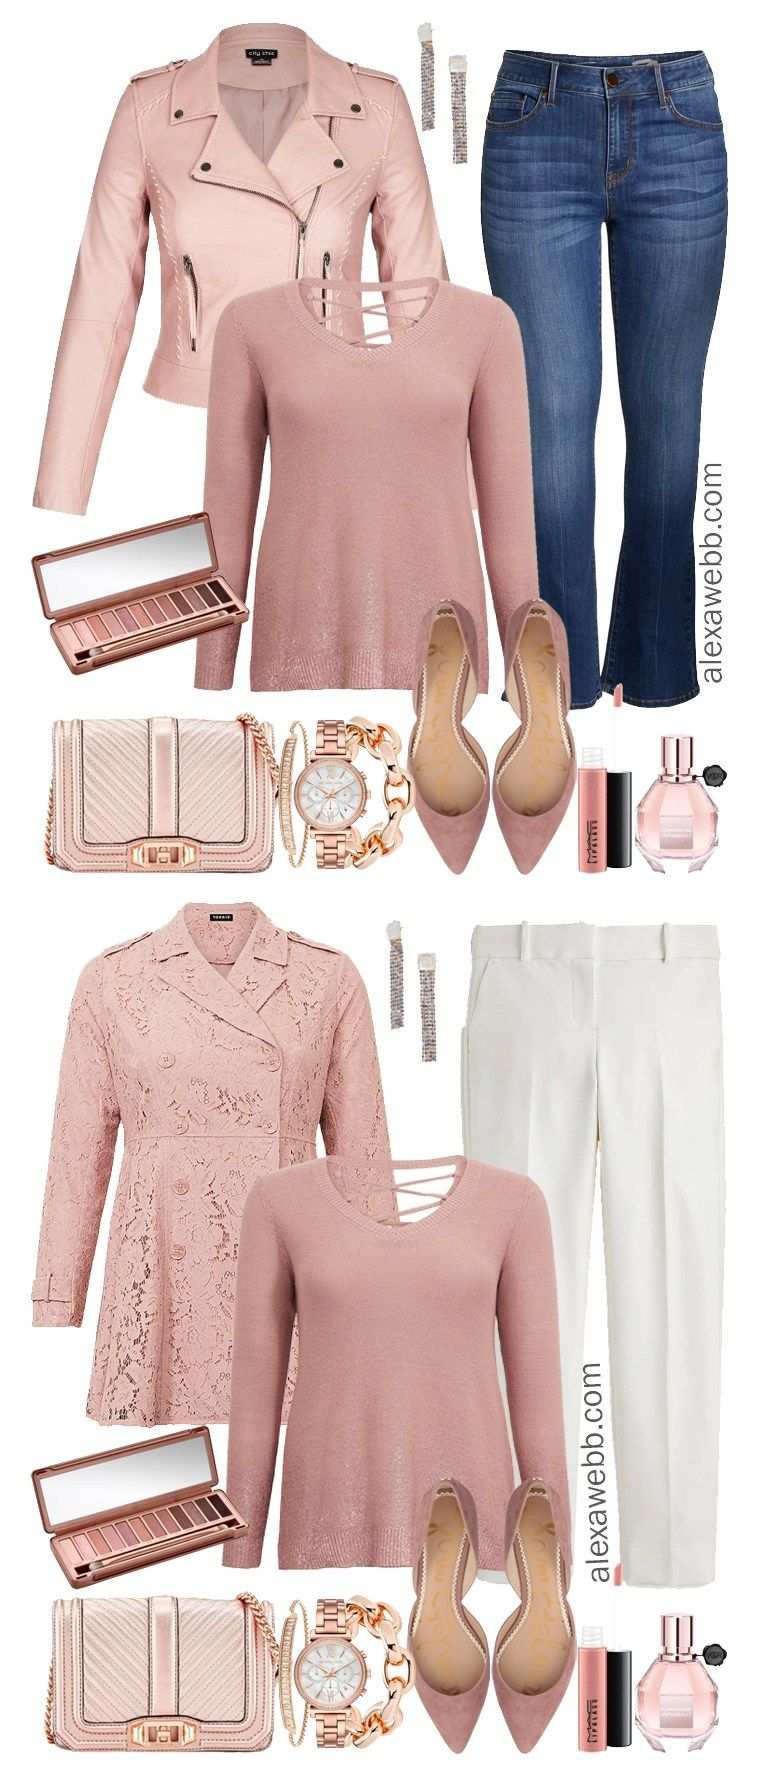 361dbf4572b Plus Size Rose Gold Sweater Outfit - Plus Size Winter Outfit Idea - Plus  Size Fashion for Women - alexawebb